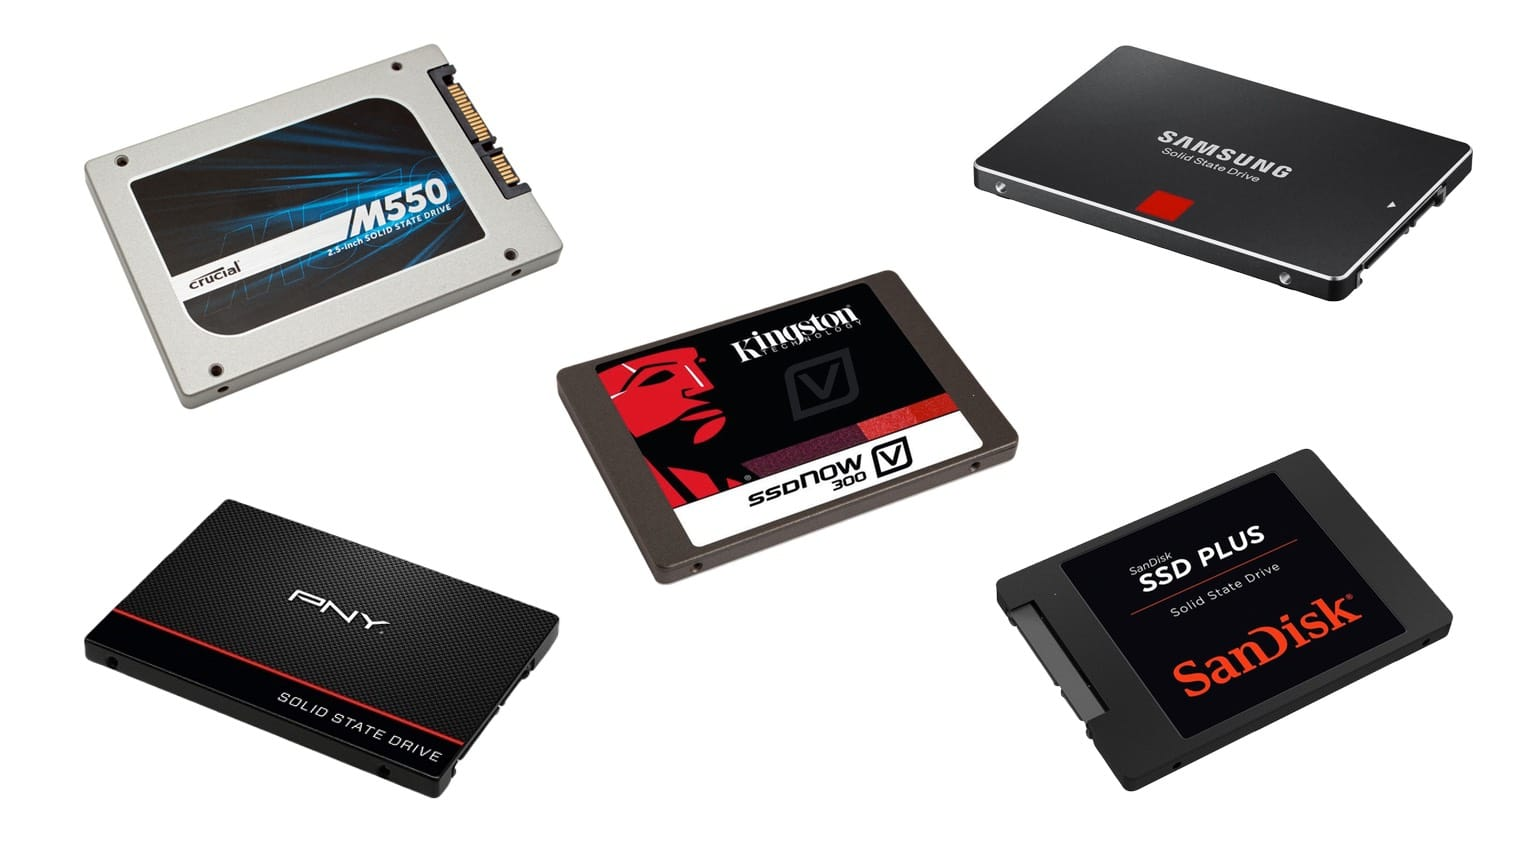 The Best SSDs for Gaming - Buyer's Guide 2017